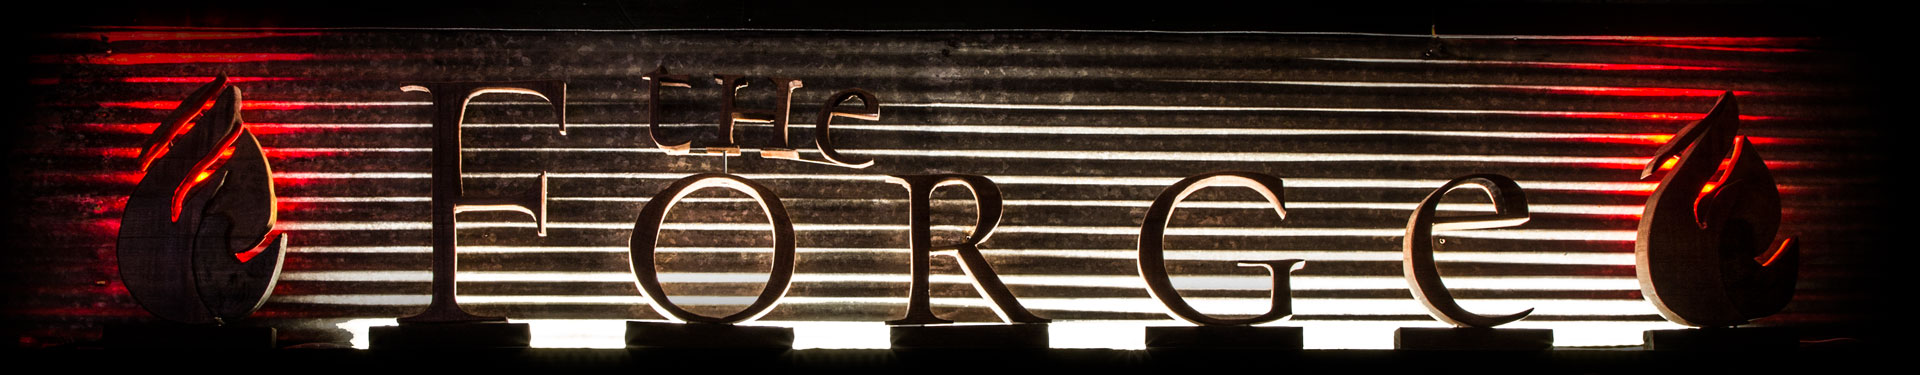 The Forge sign